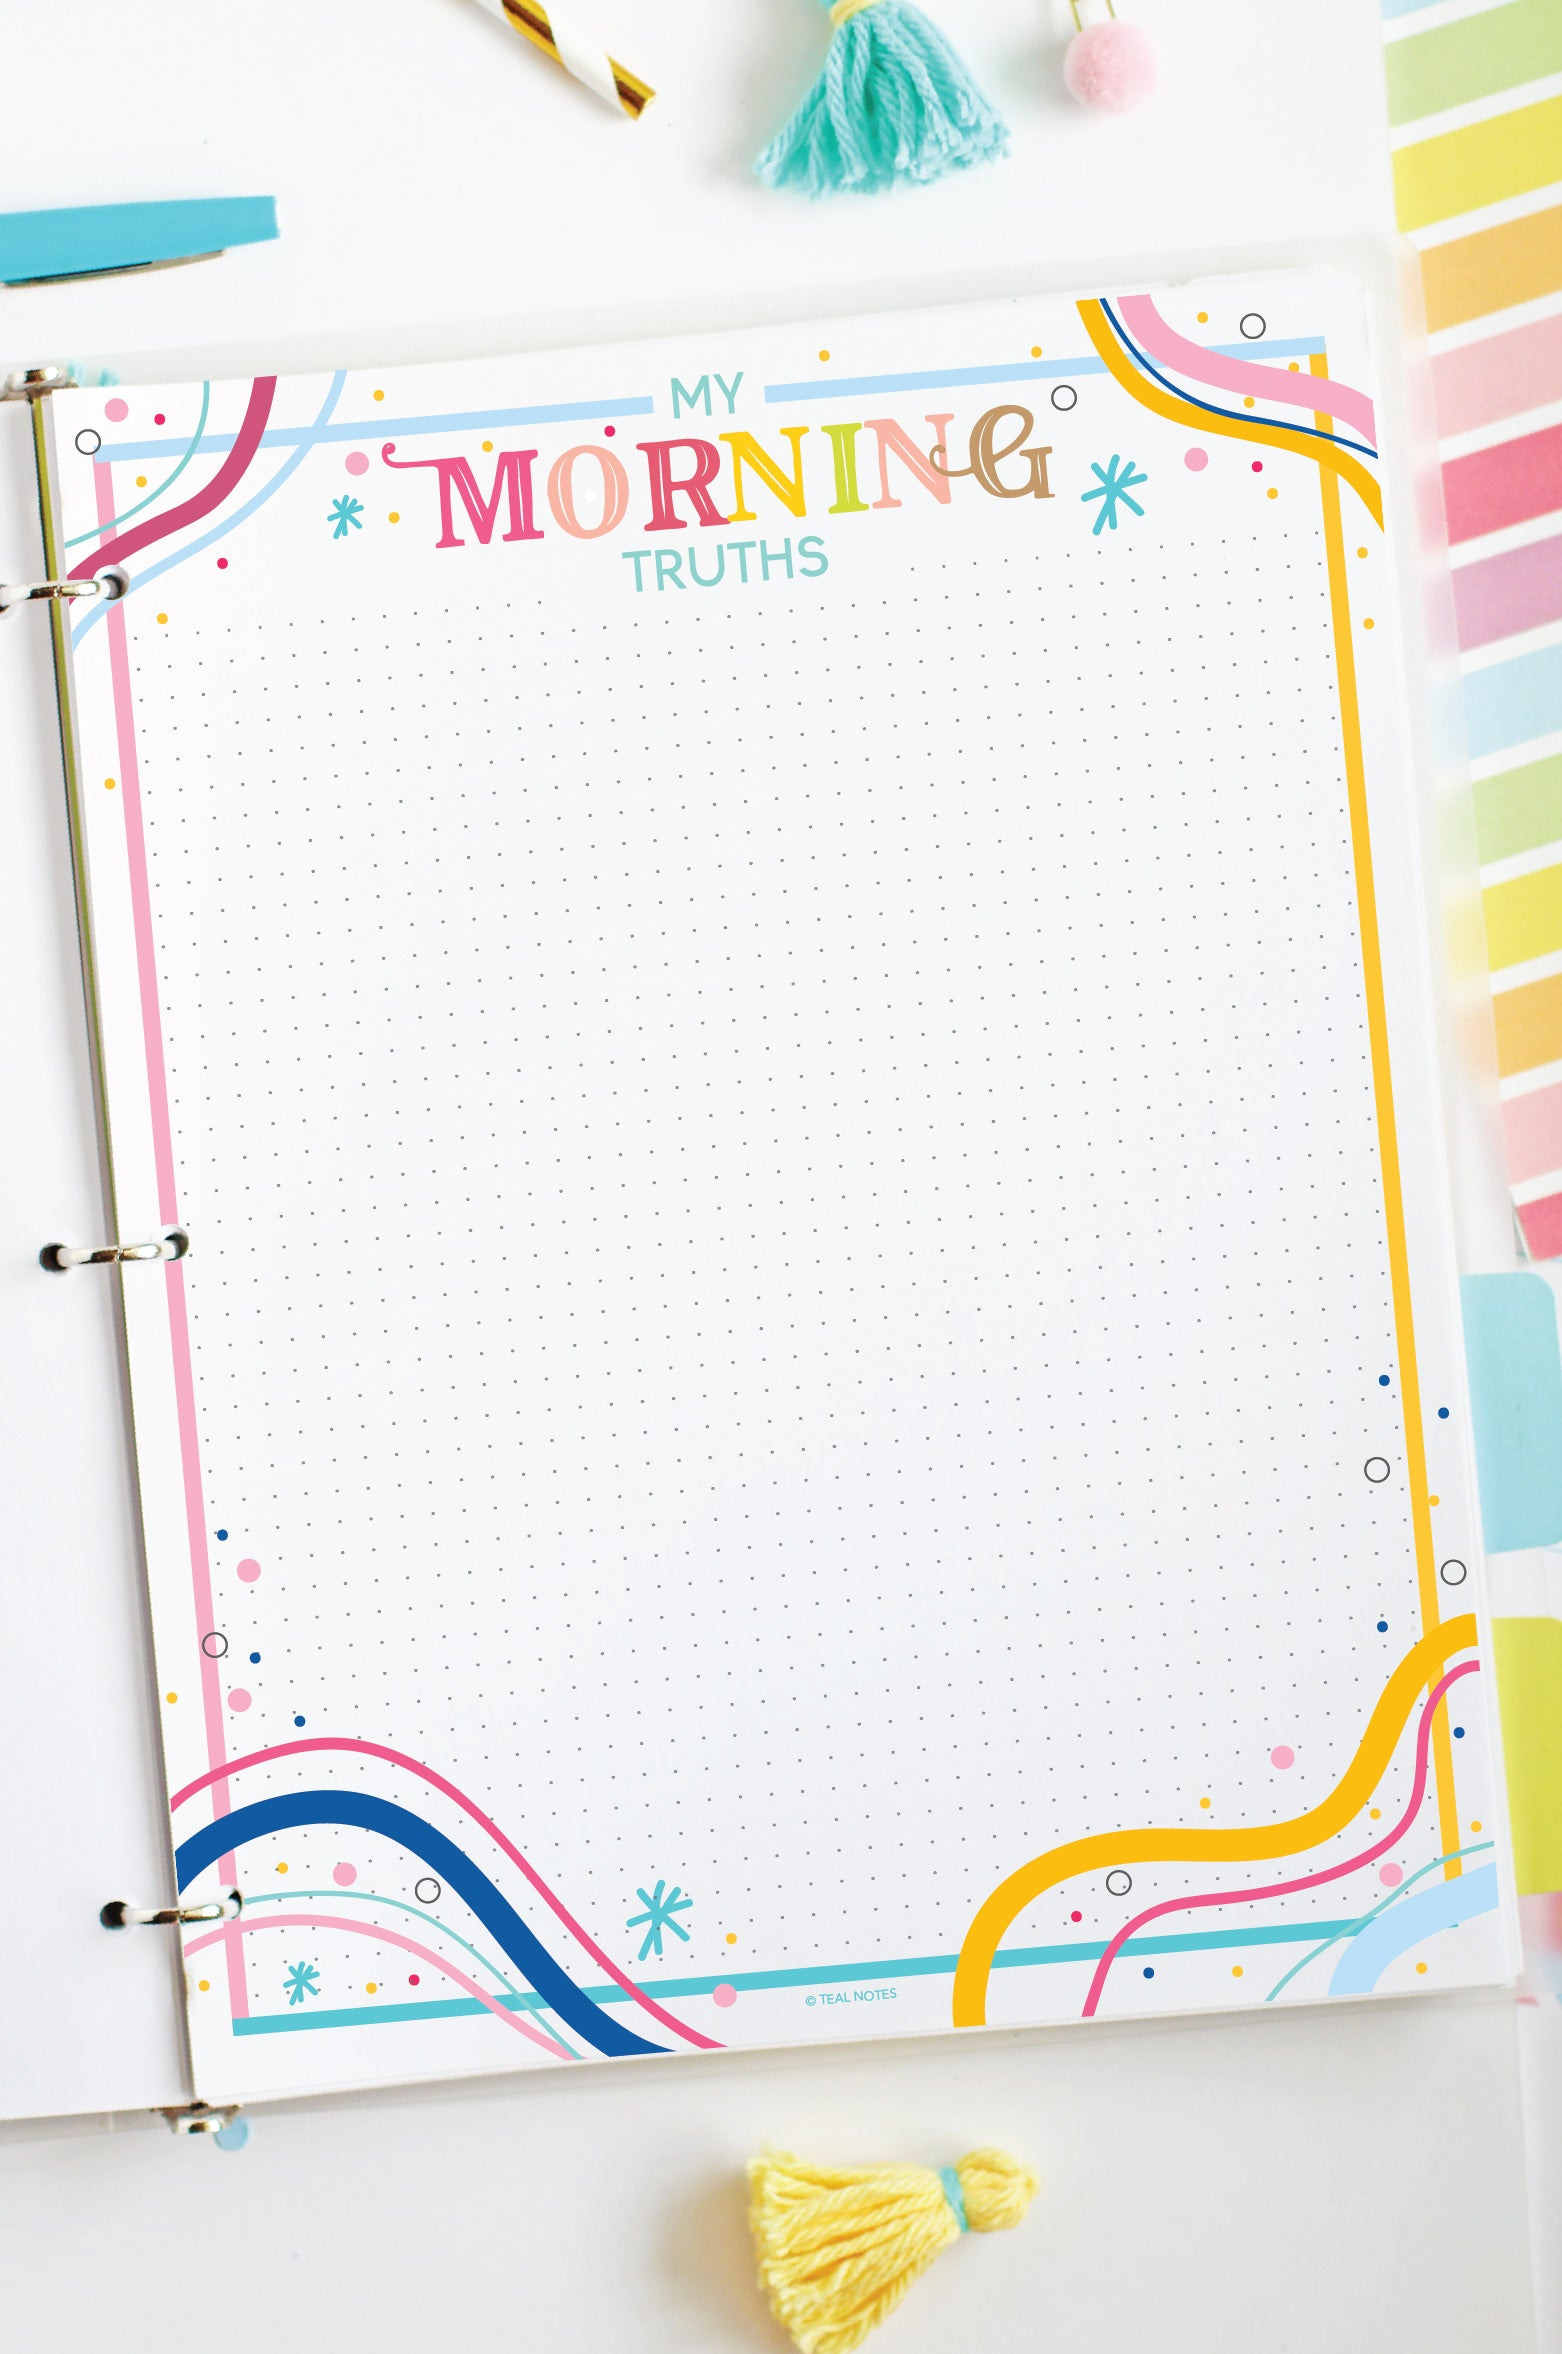 My Morning Truths Printable Planner Page